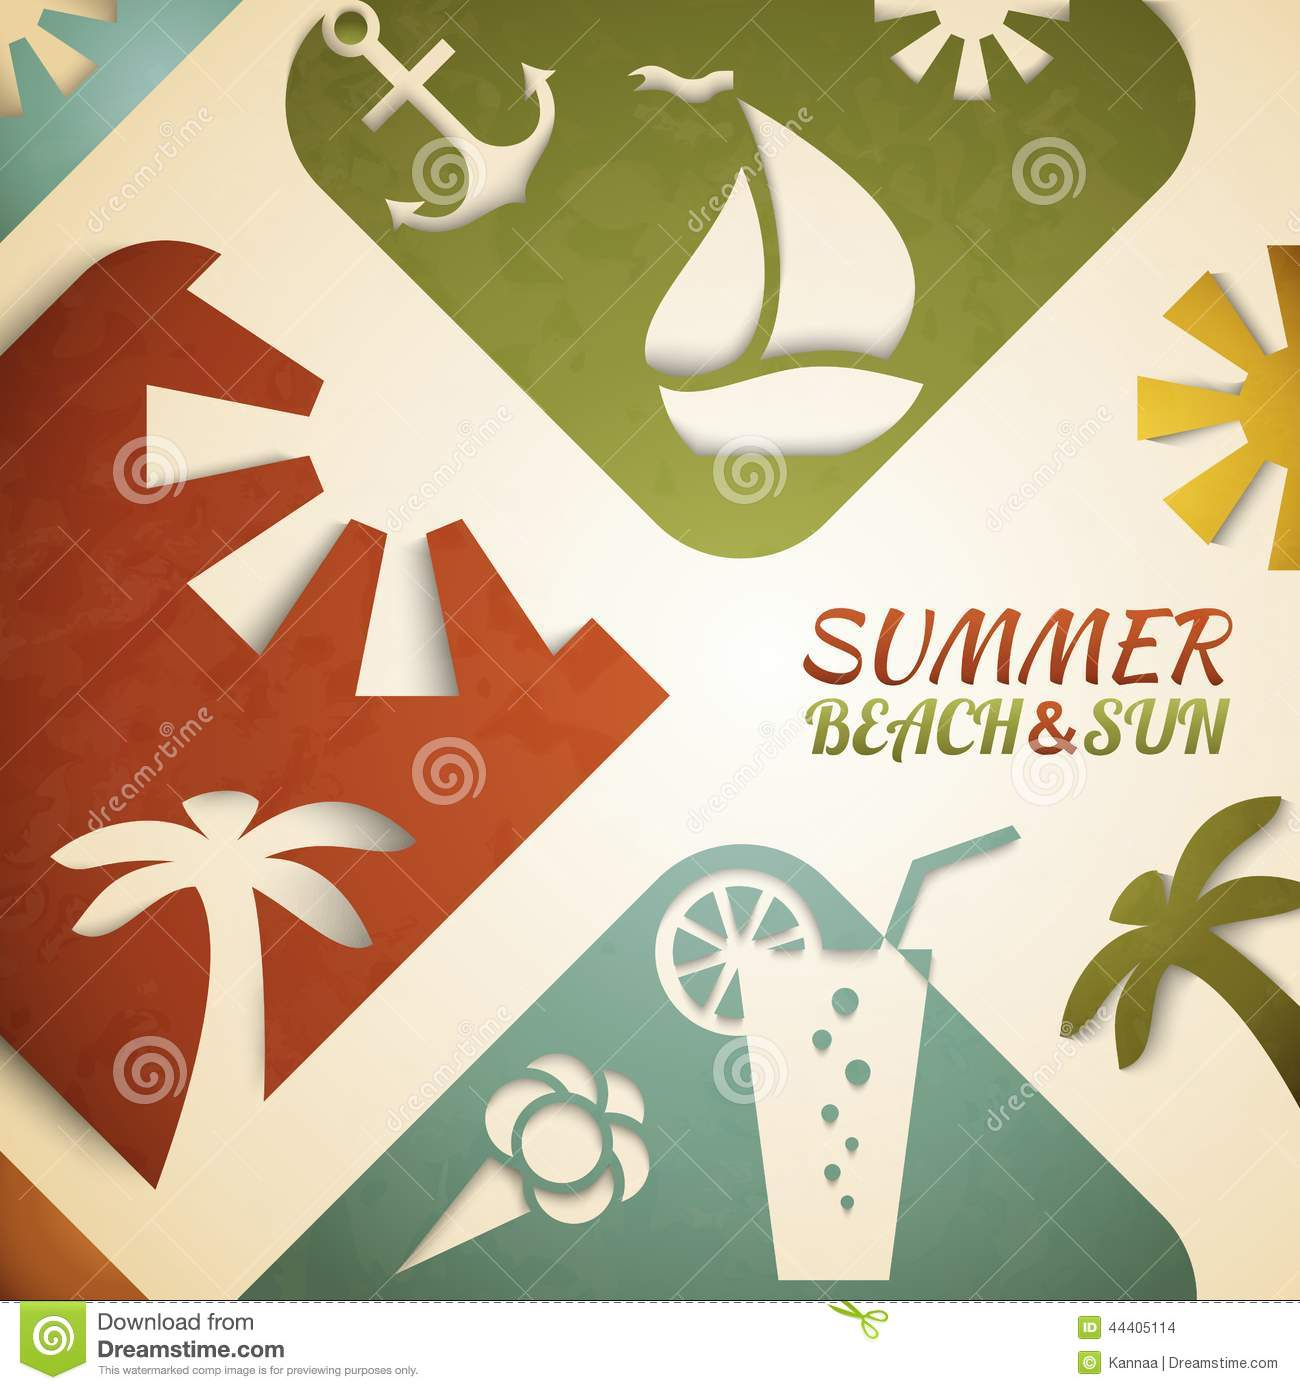 summer vector illustraitons - photo #12